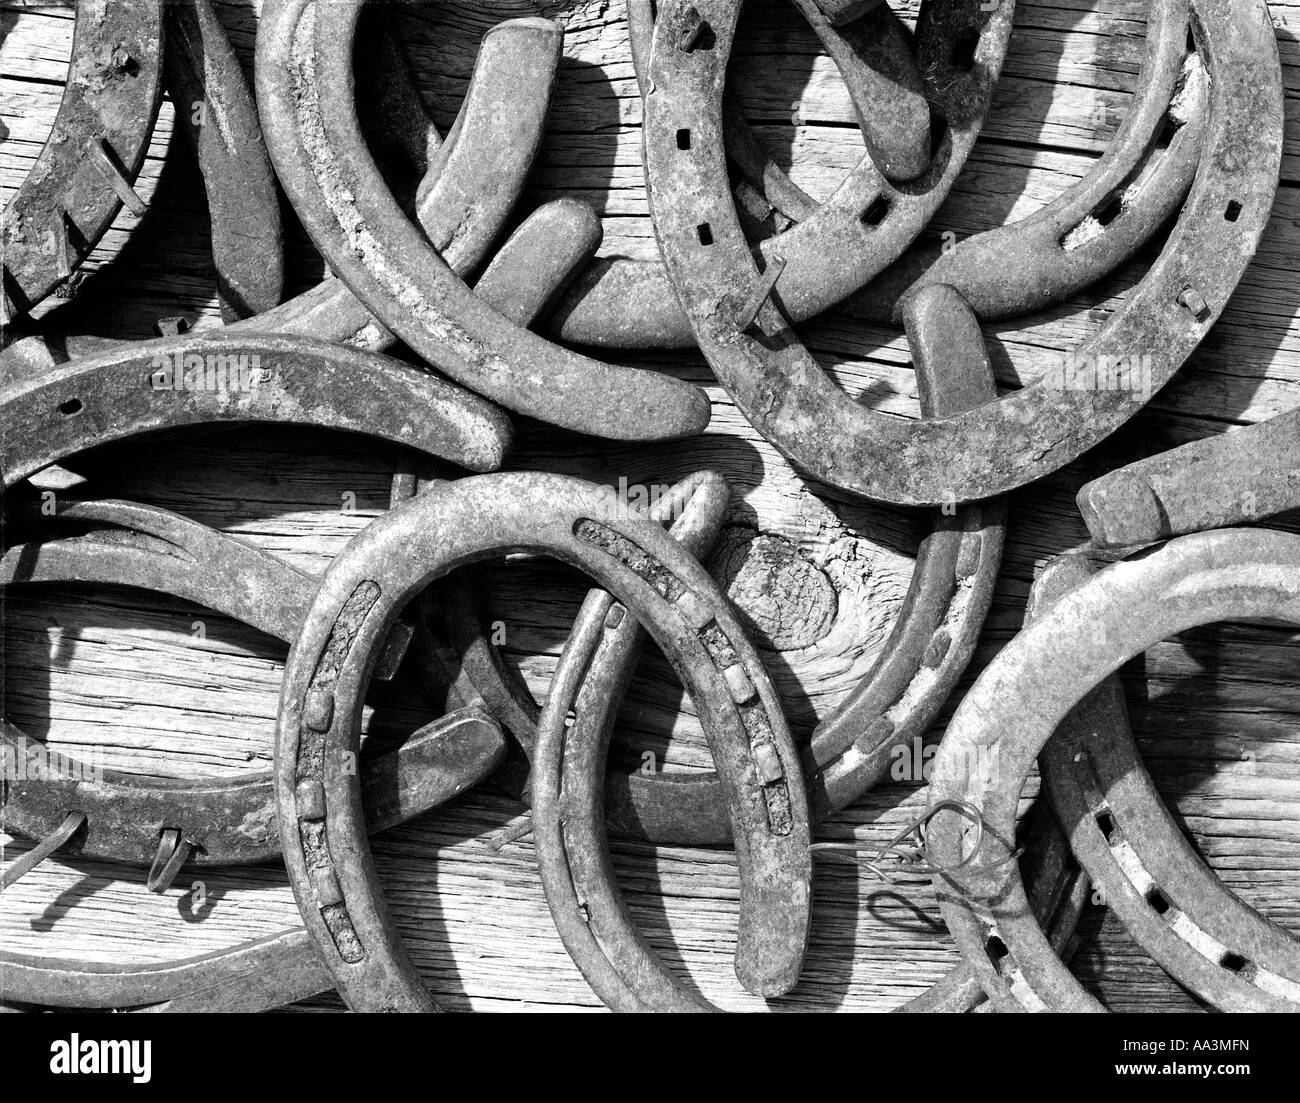 Old horseshoes piled onto an old wooden barn plank - Stock Image